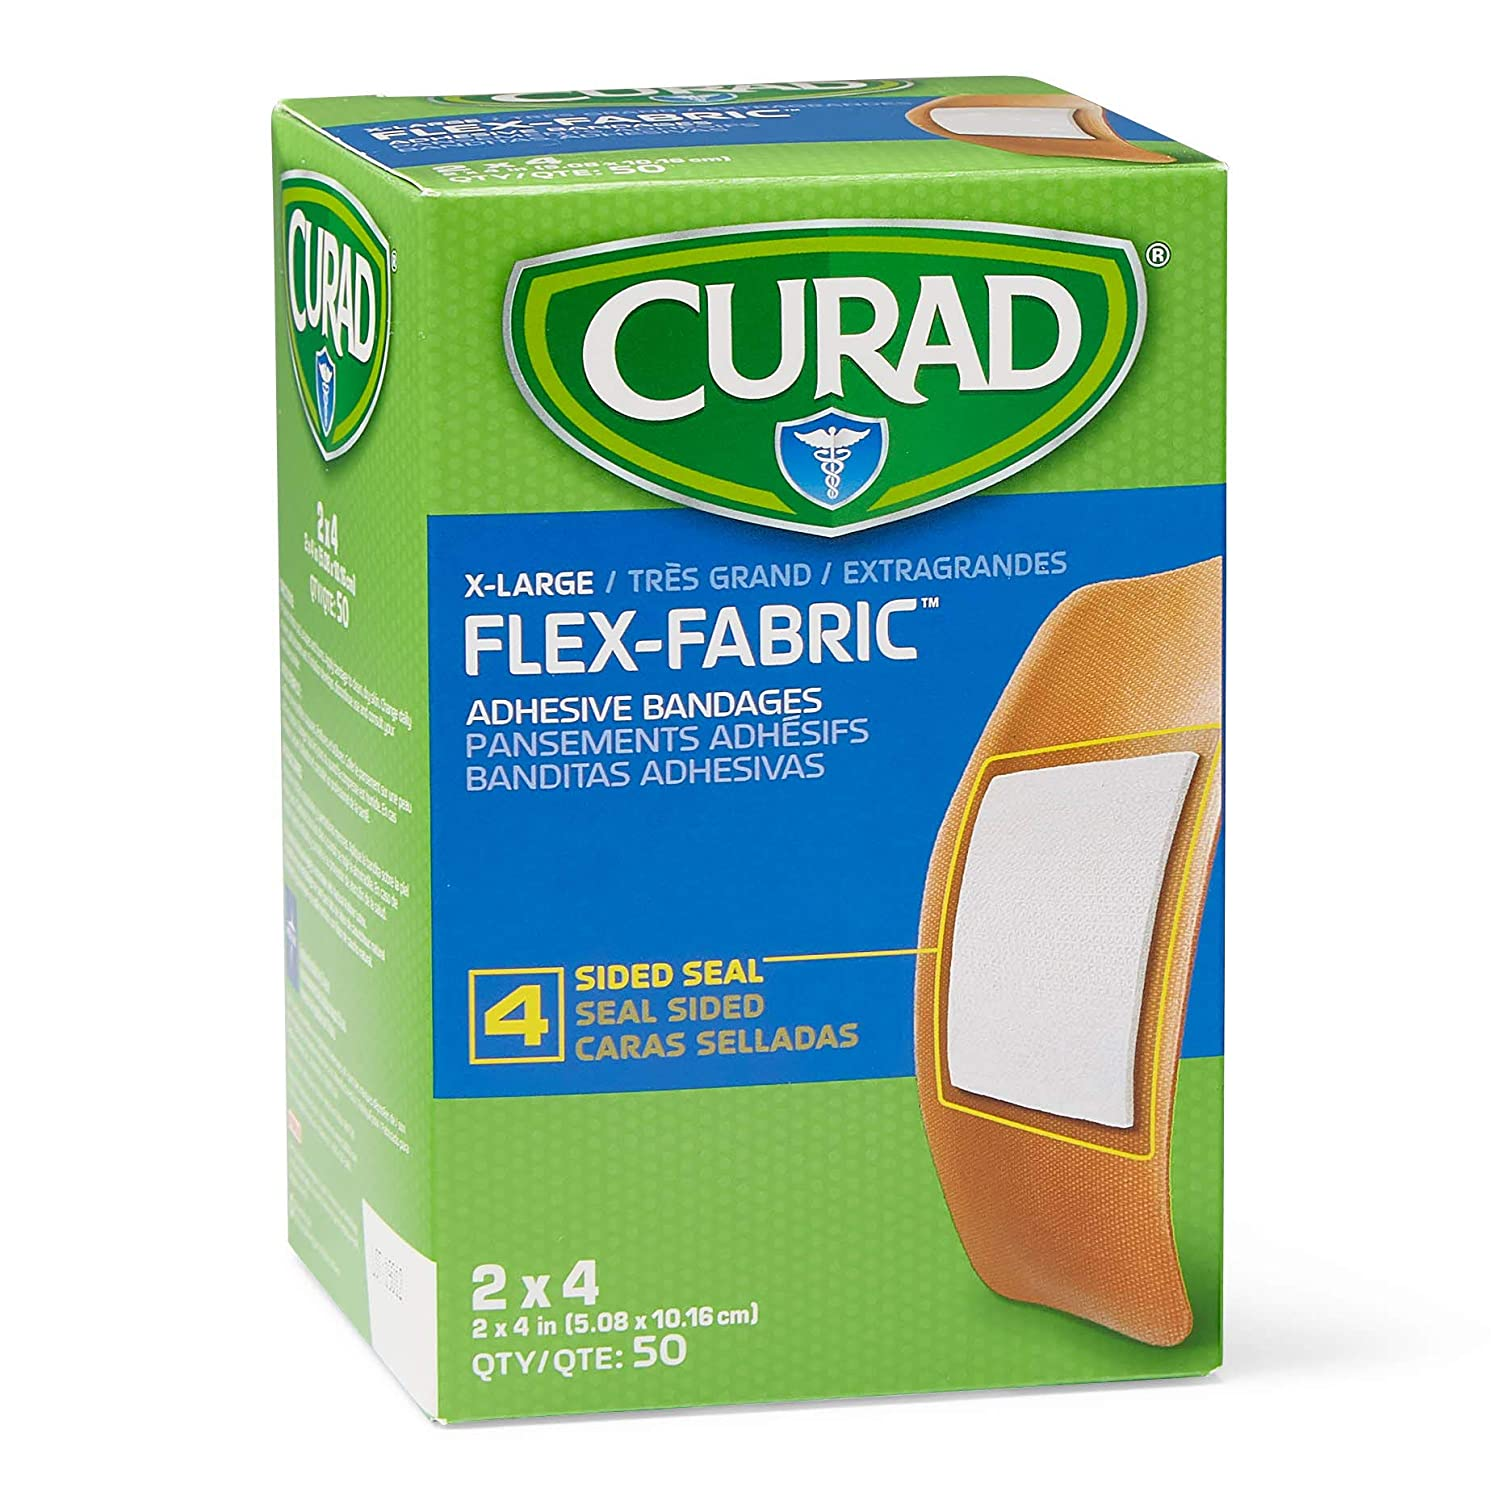 Curad Flex-Fabric Adhesive Bandages with Stretch to Conform to Wounds, 2 x 4 Inches, (50 Count)